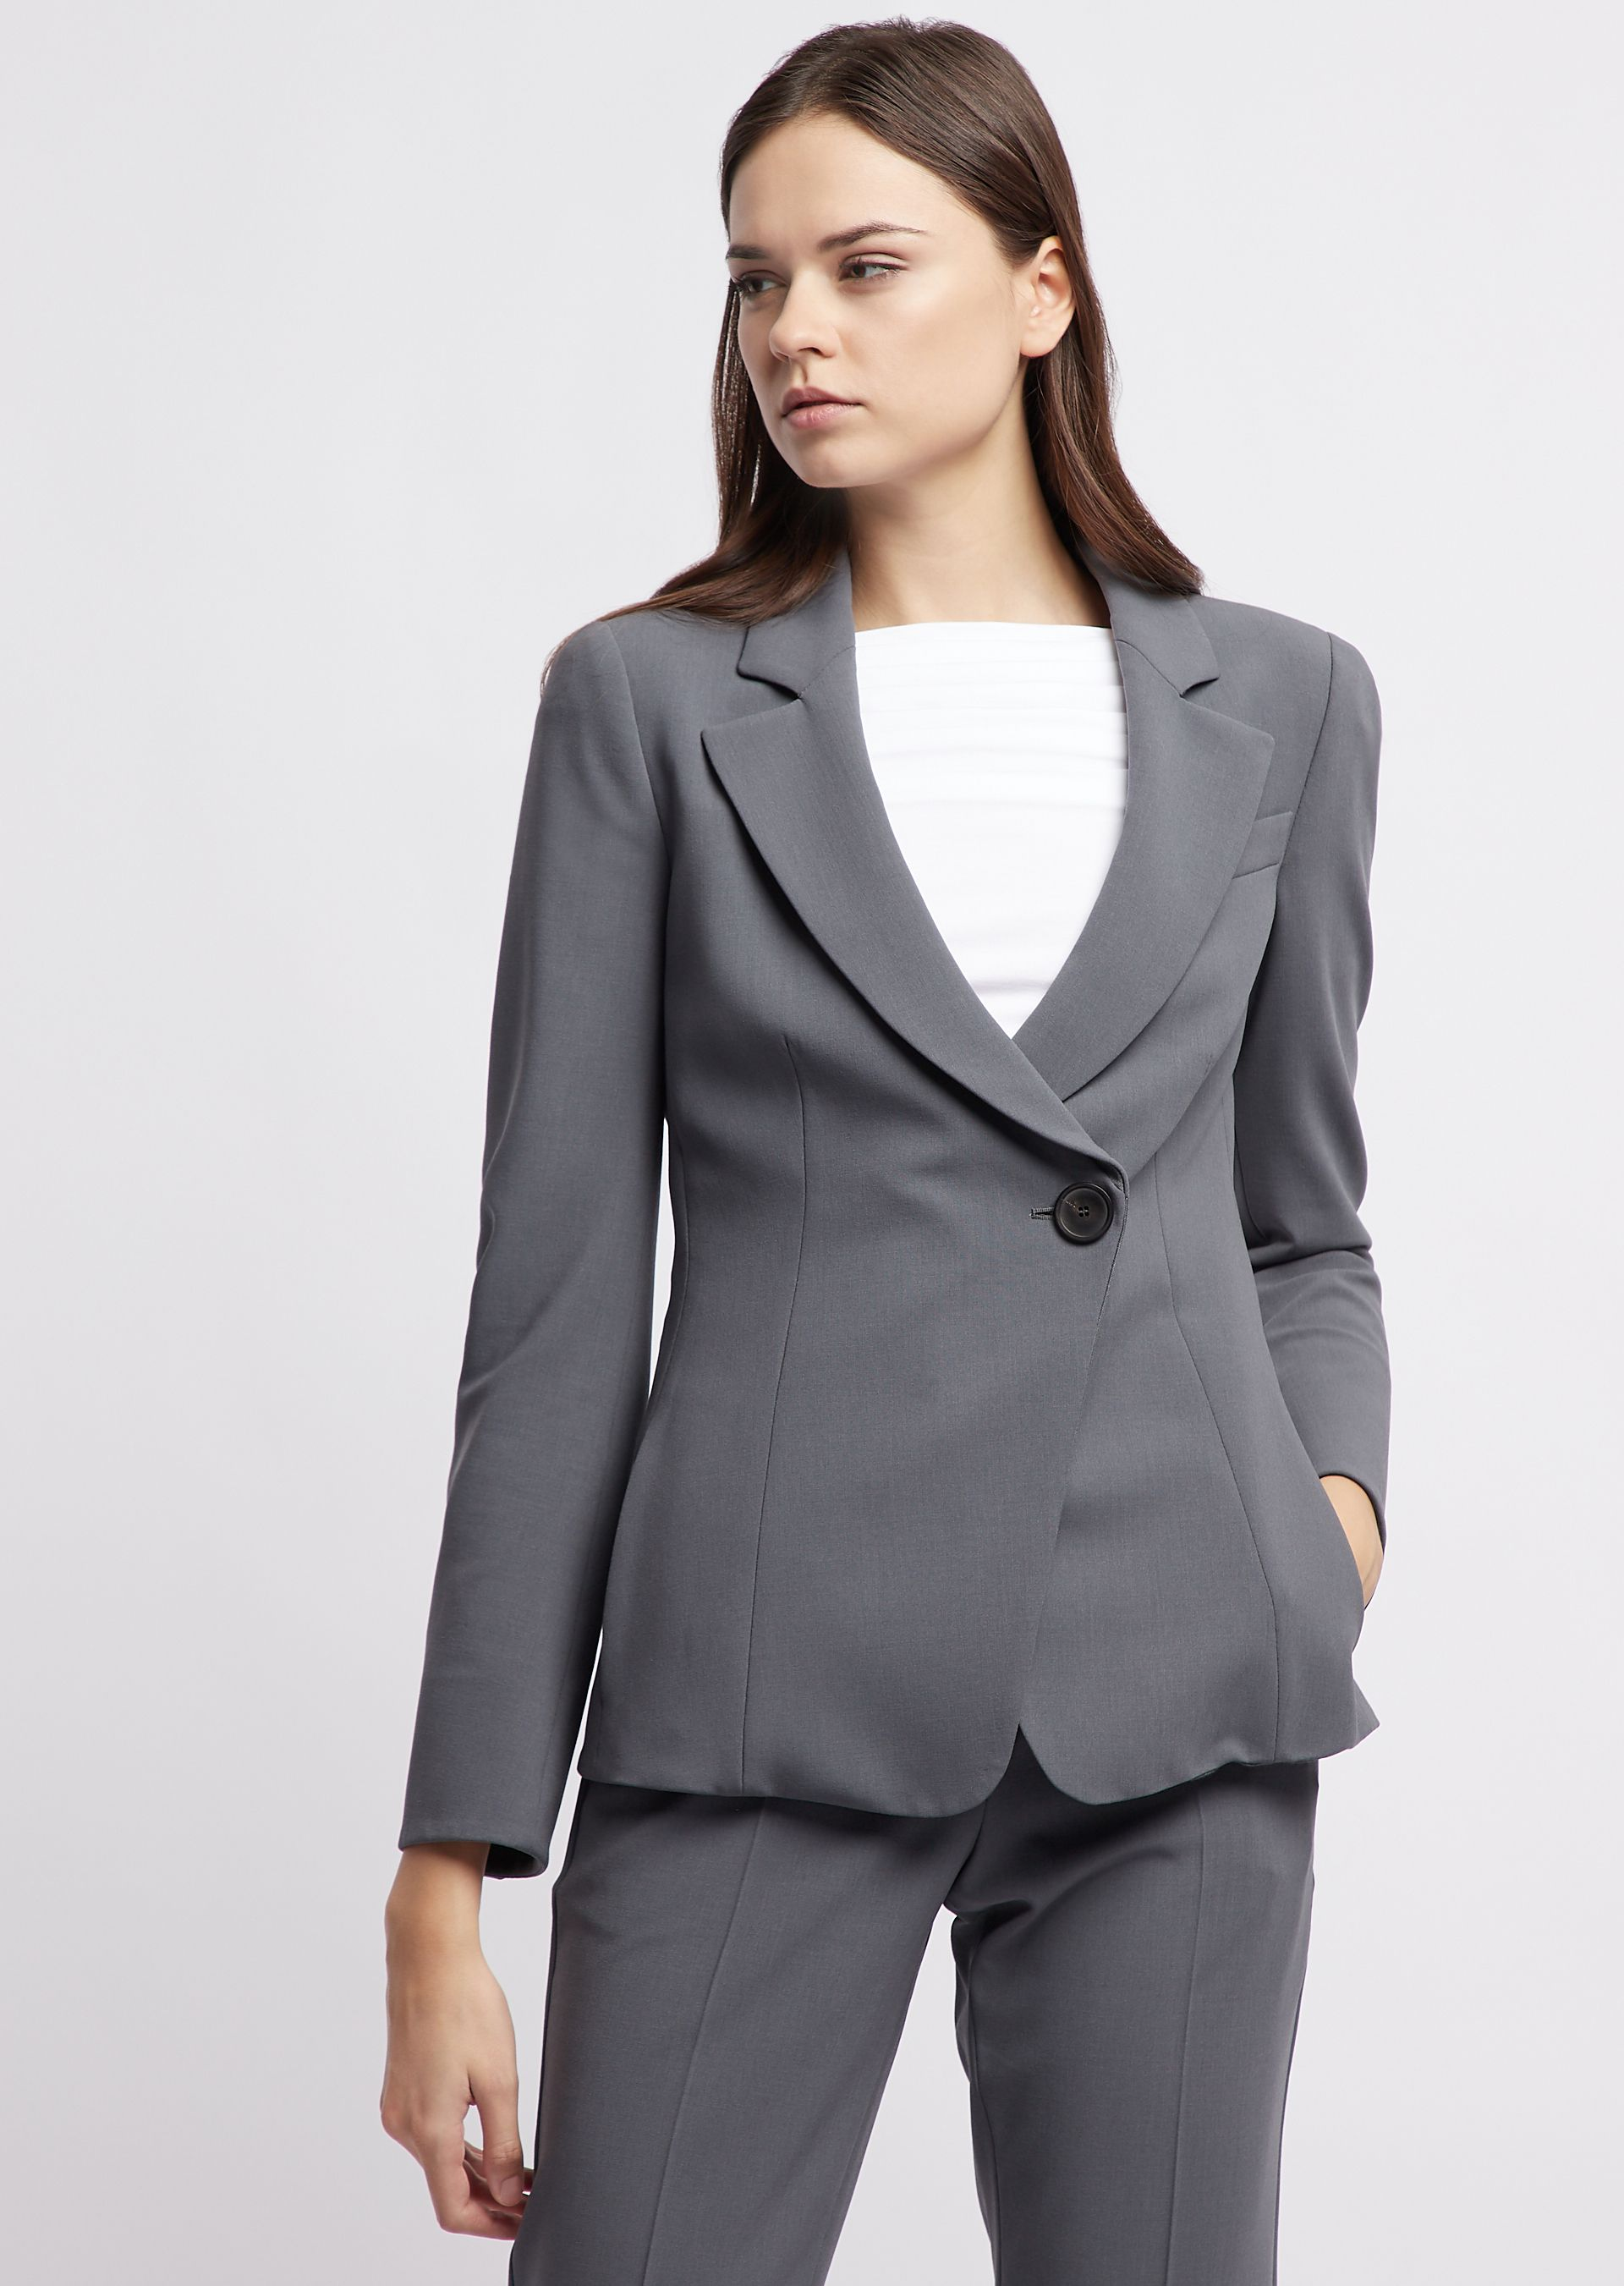 Jackets - Item 41872924 in Gray from ARMANI.COM